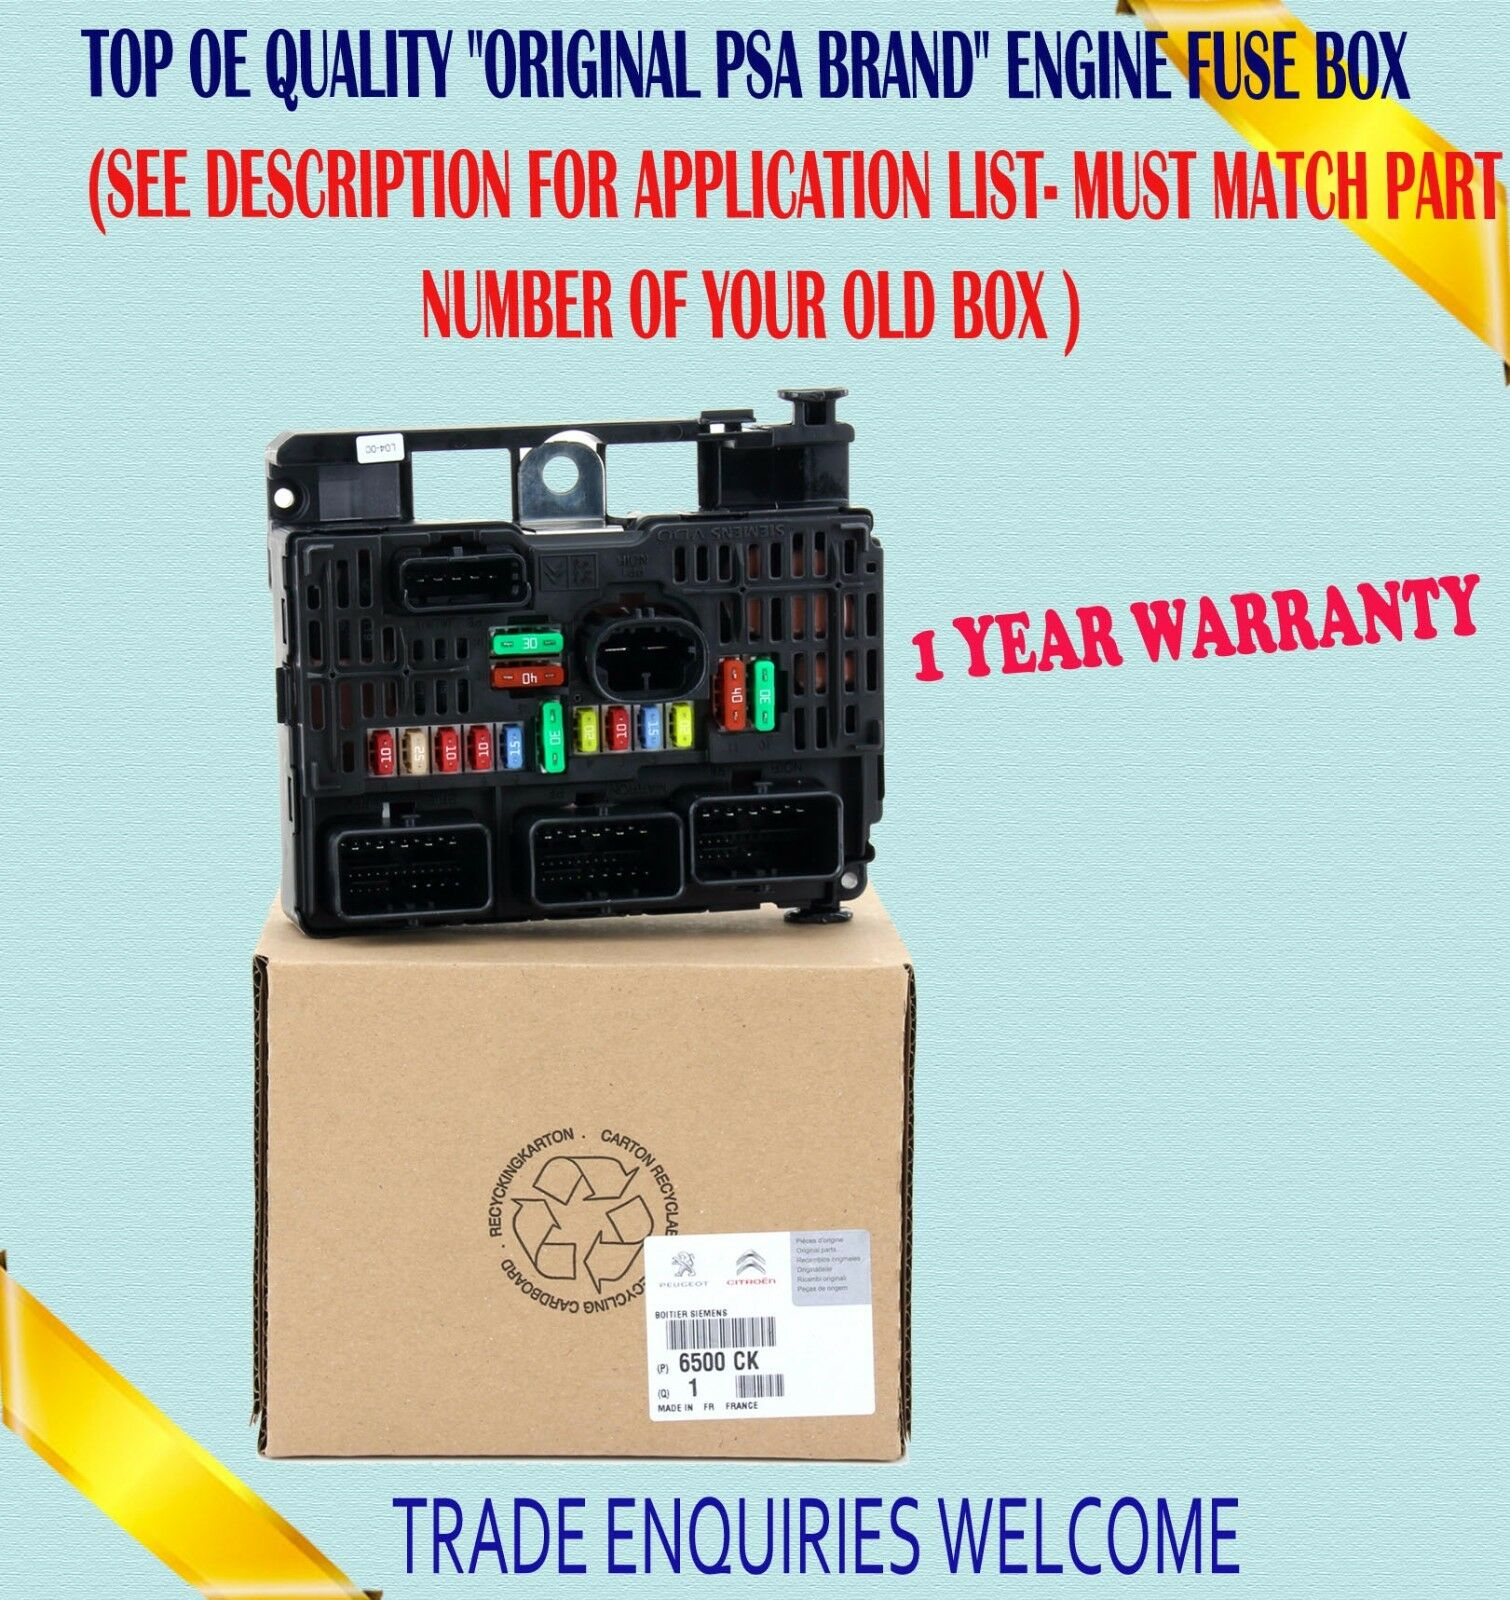 Fits Peugeot 206 307 607 807 Expert Central Electronic Control Fuse Box In Engine 1 Of 1only 0 Available